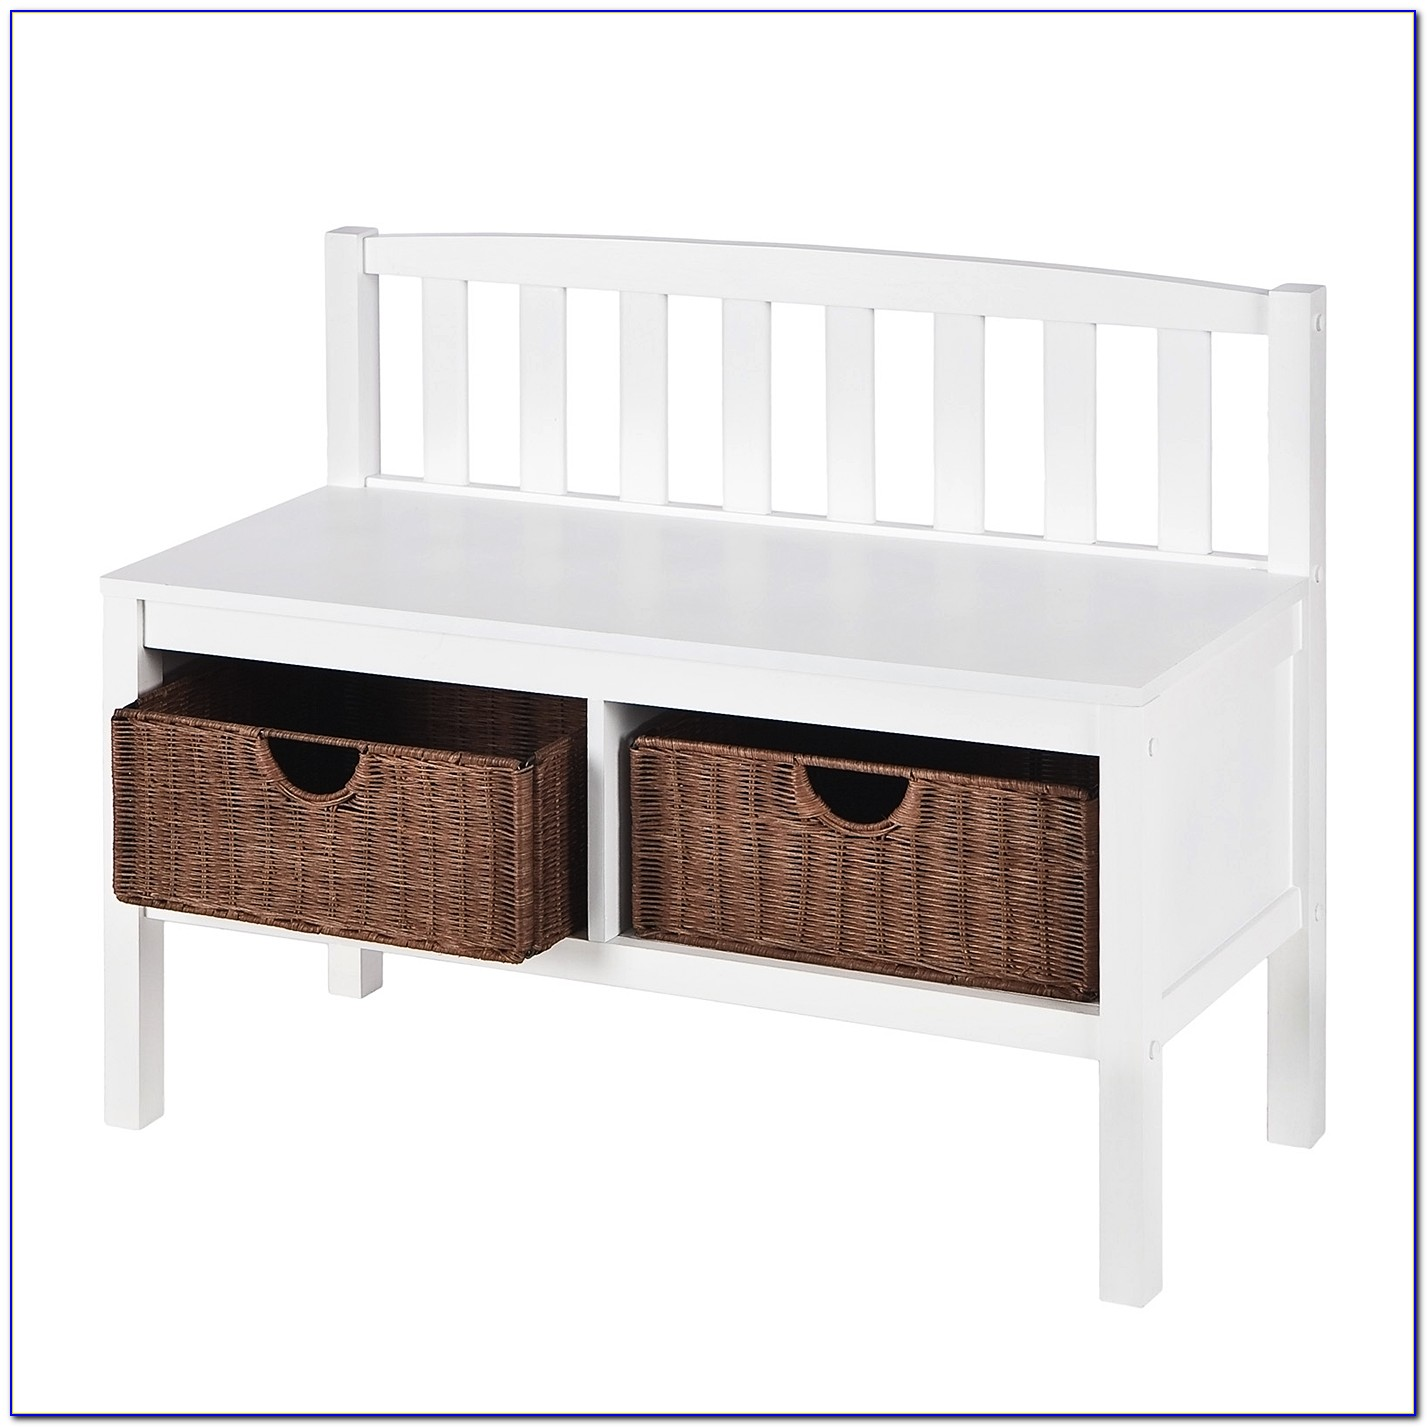 White Entryway Bench With Baskets